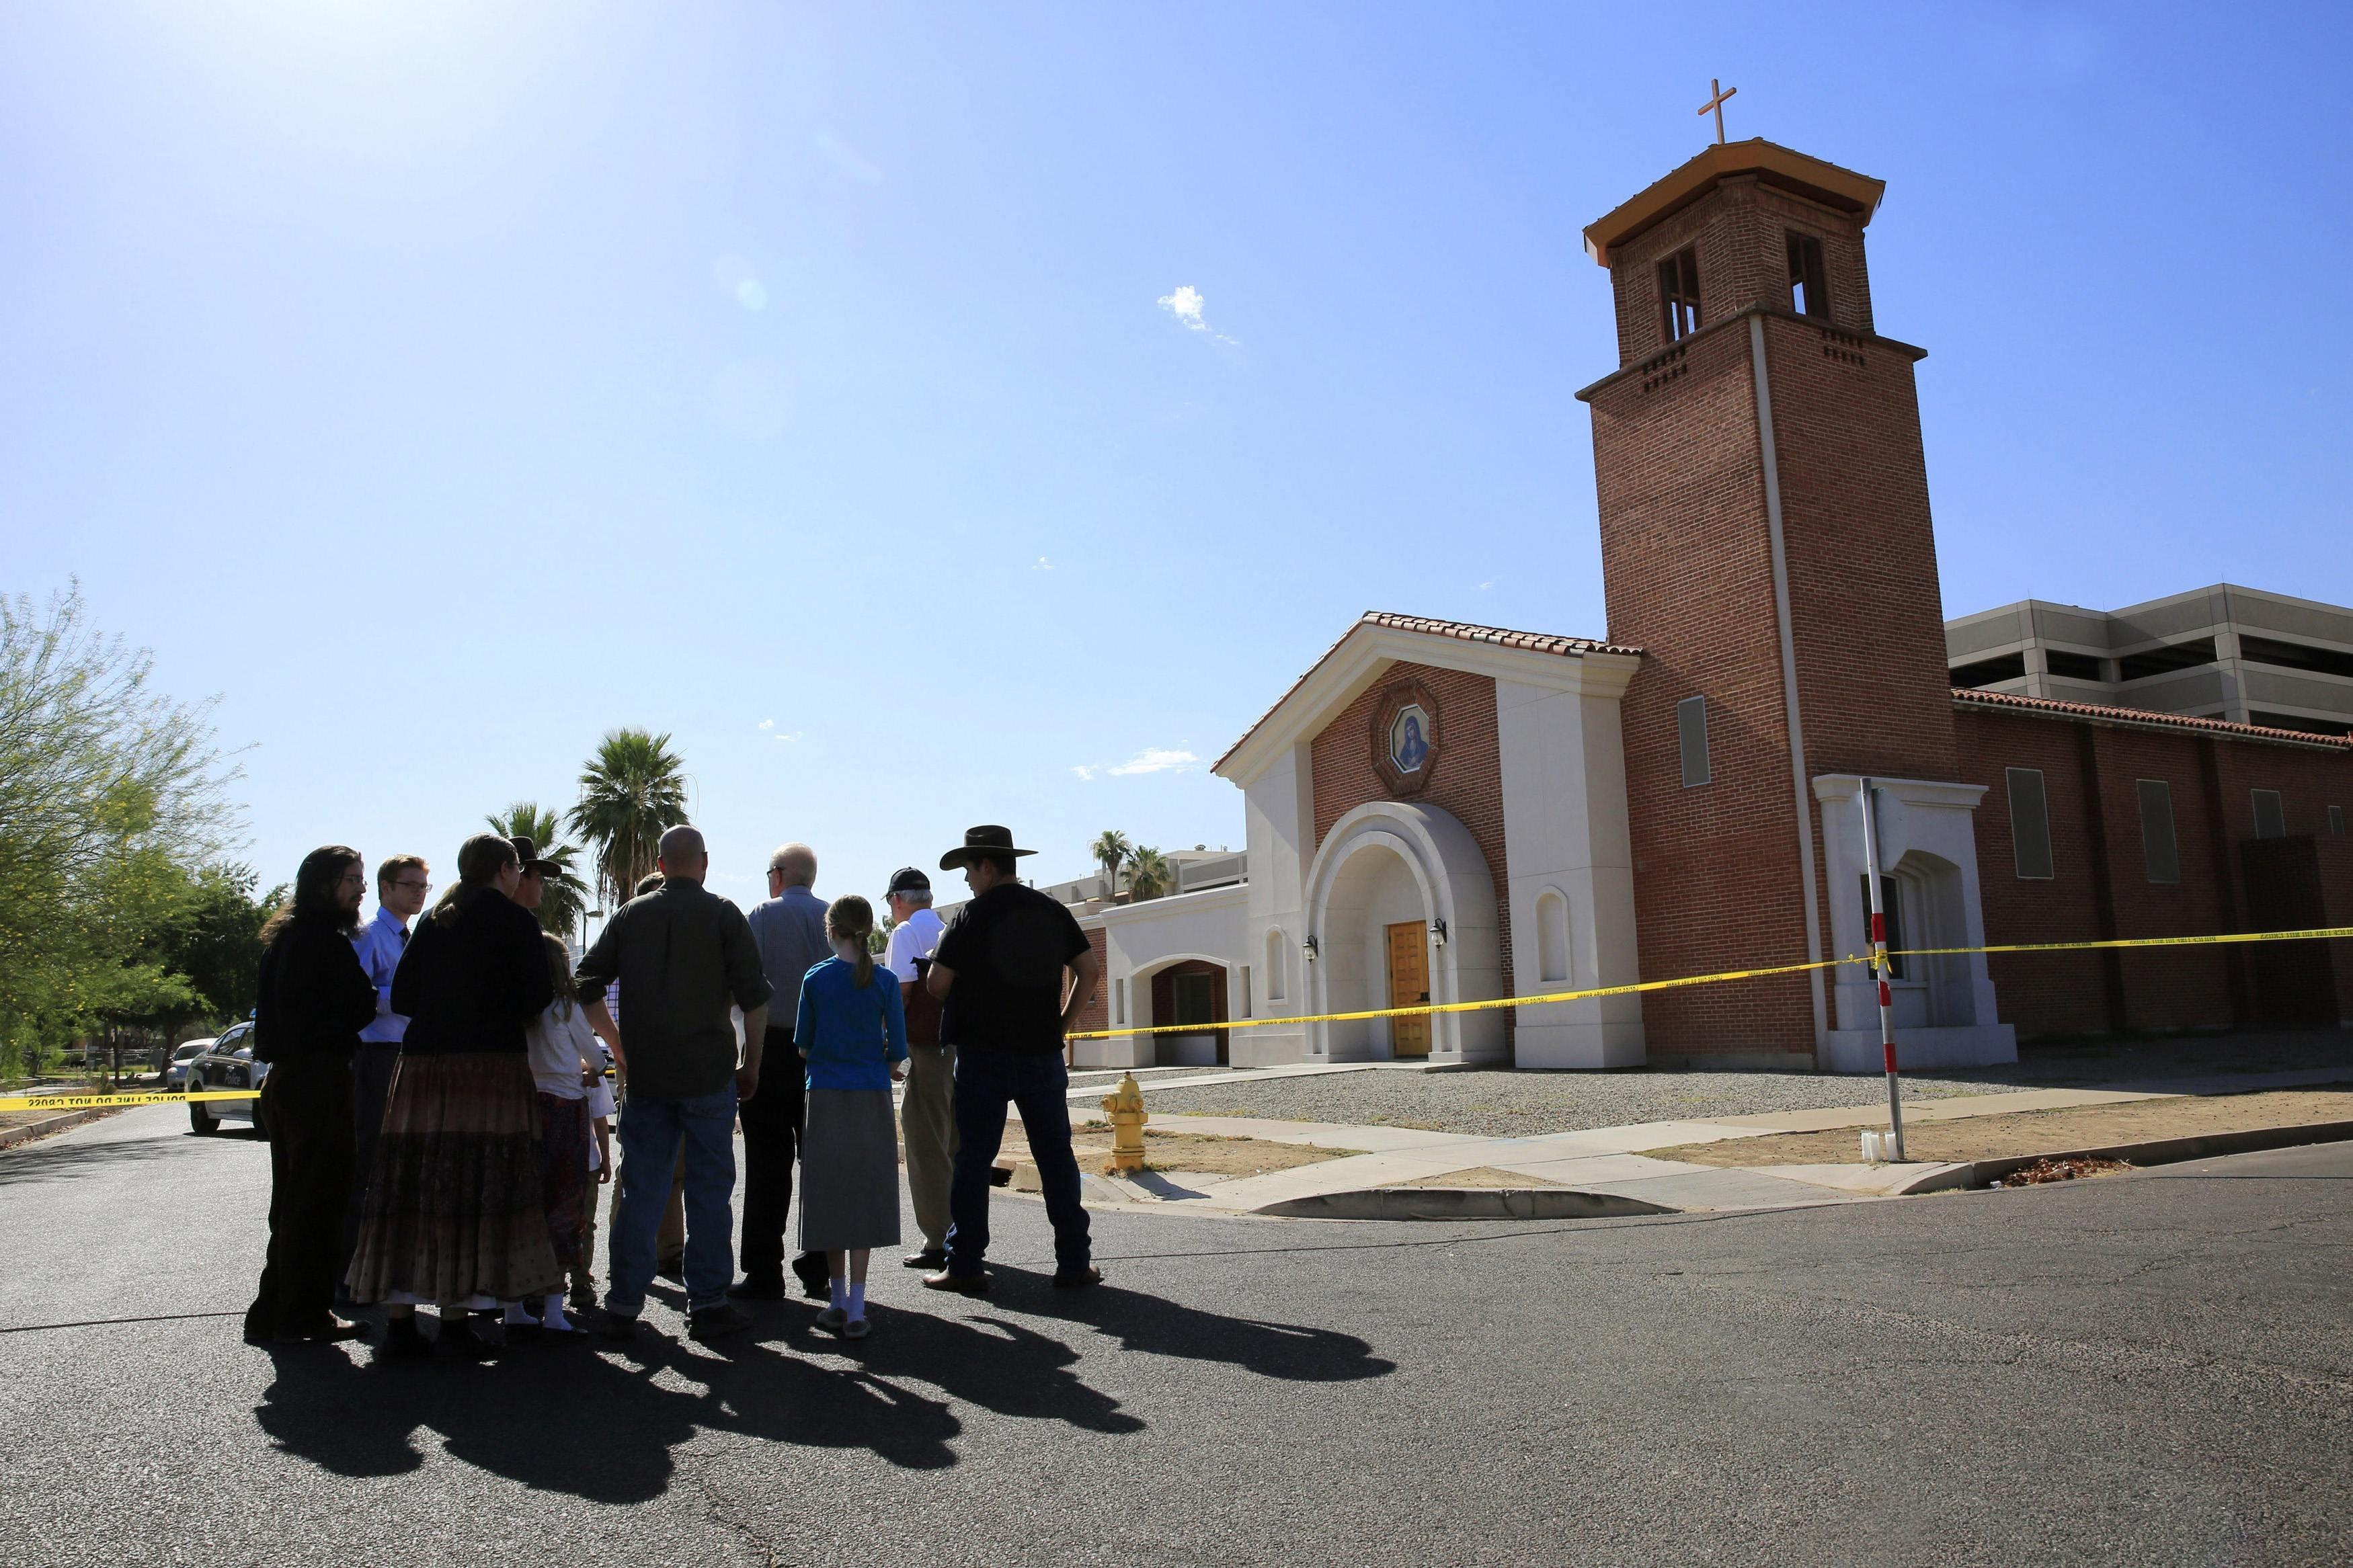 Image: Parishioners arrive to pray, outside the Mater Misericordiae Mission Catholic church in Phoenix